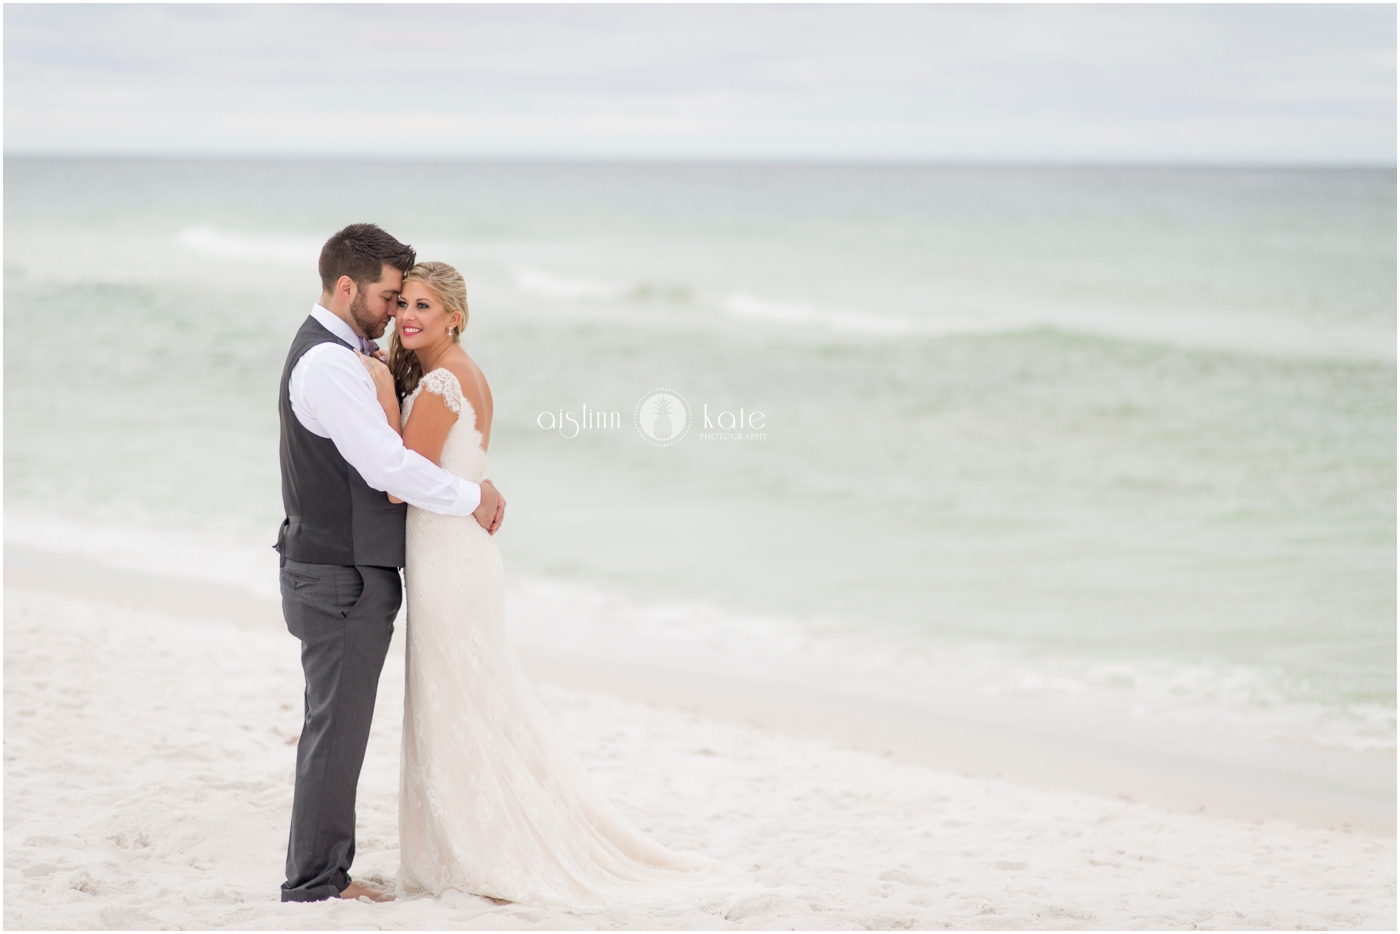 Pensacola-Destin-Wedding-Photographer_3334.jpg